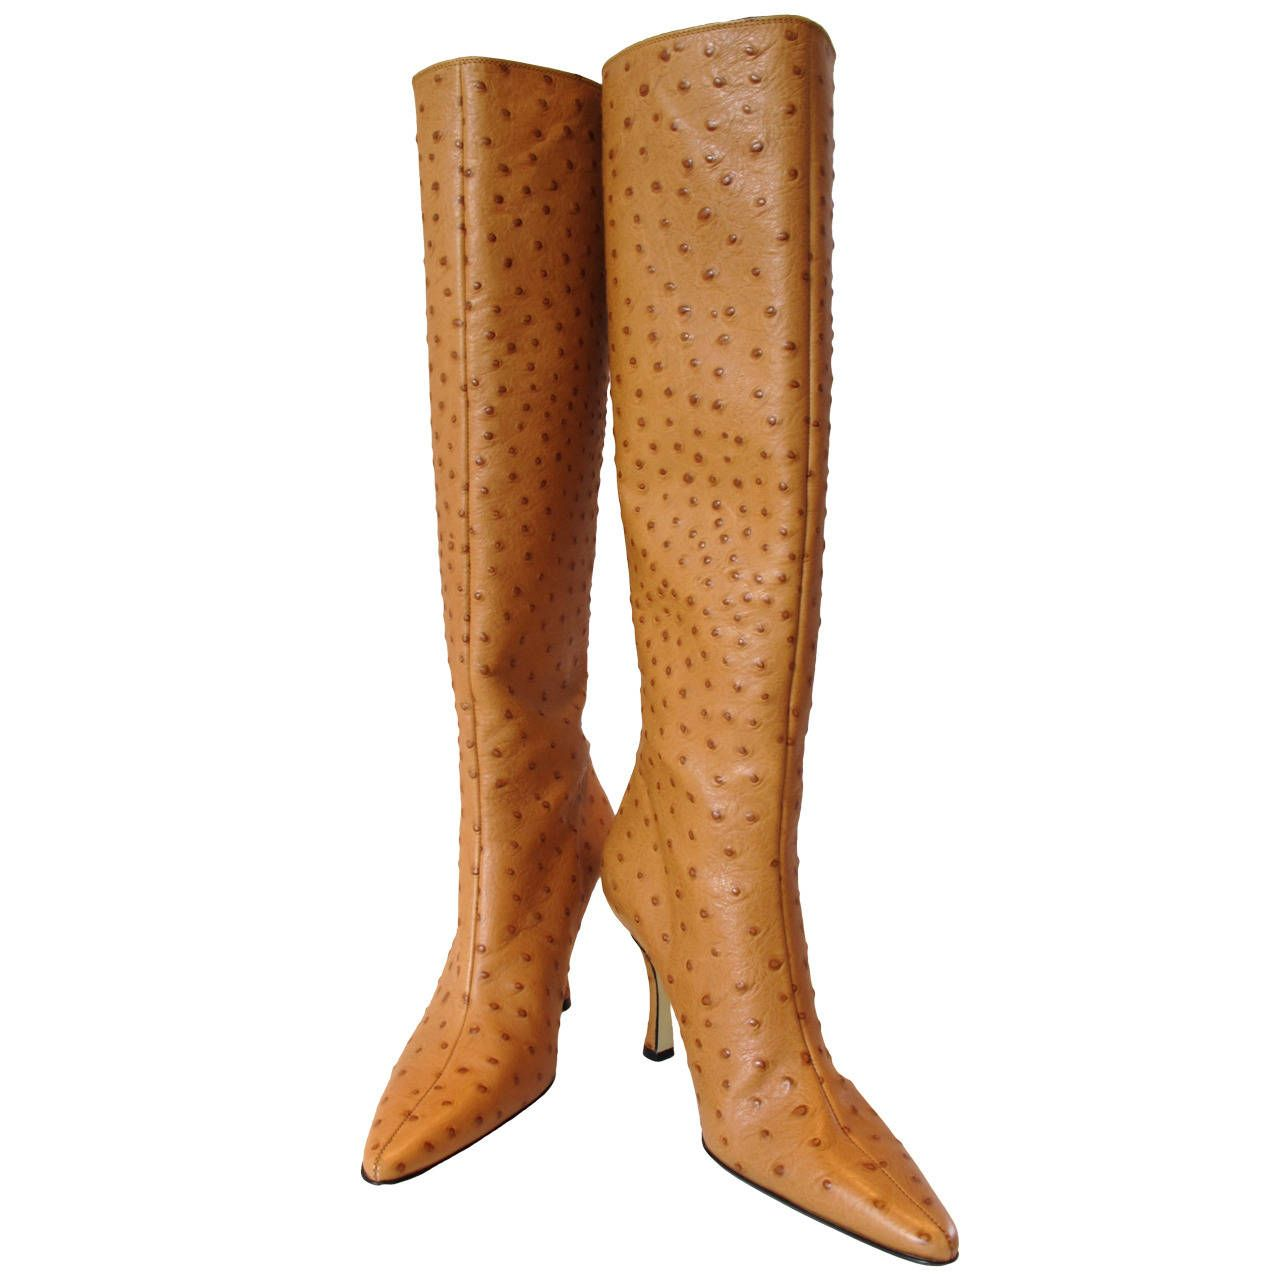 New Walter Steiger Camel-Ostrich Knee High Boots | From a collection of rare vintage shoes at https://www.1stdibs.com/fashion/accessories/shoes/